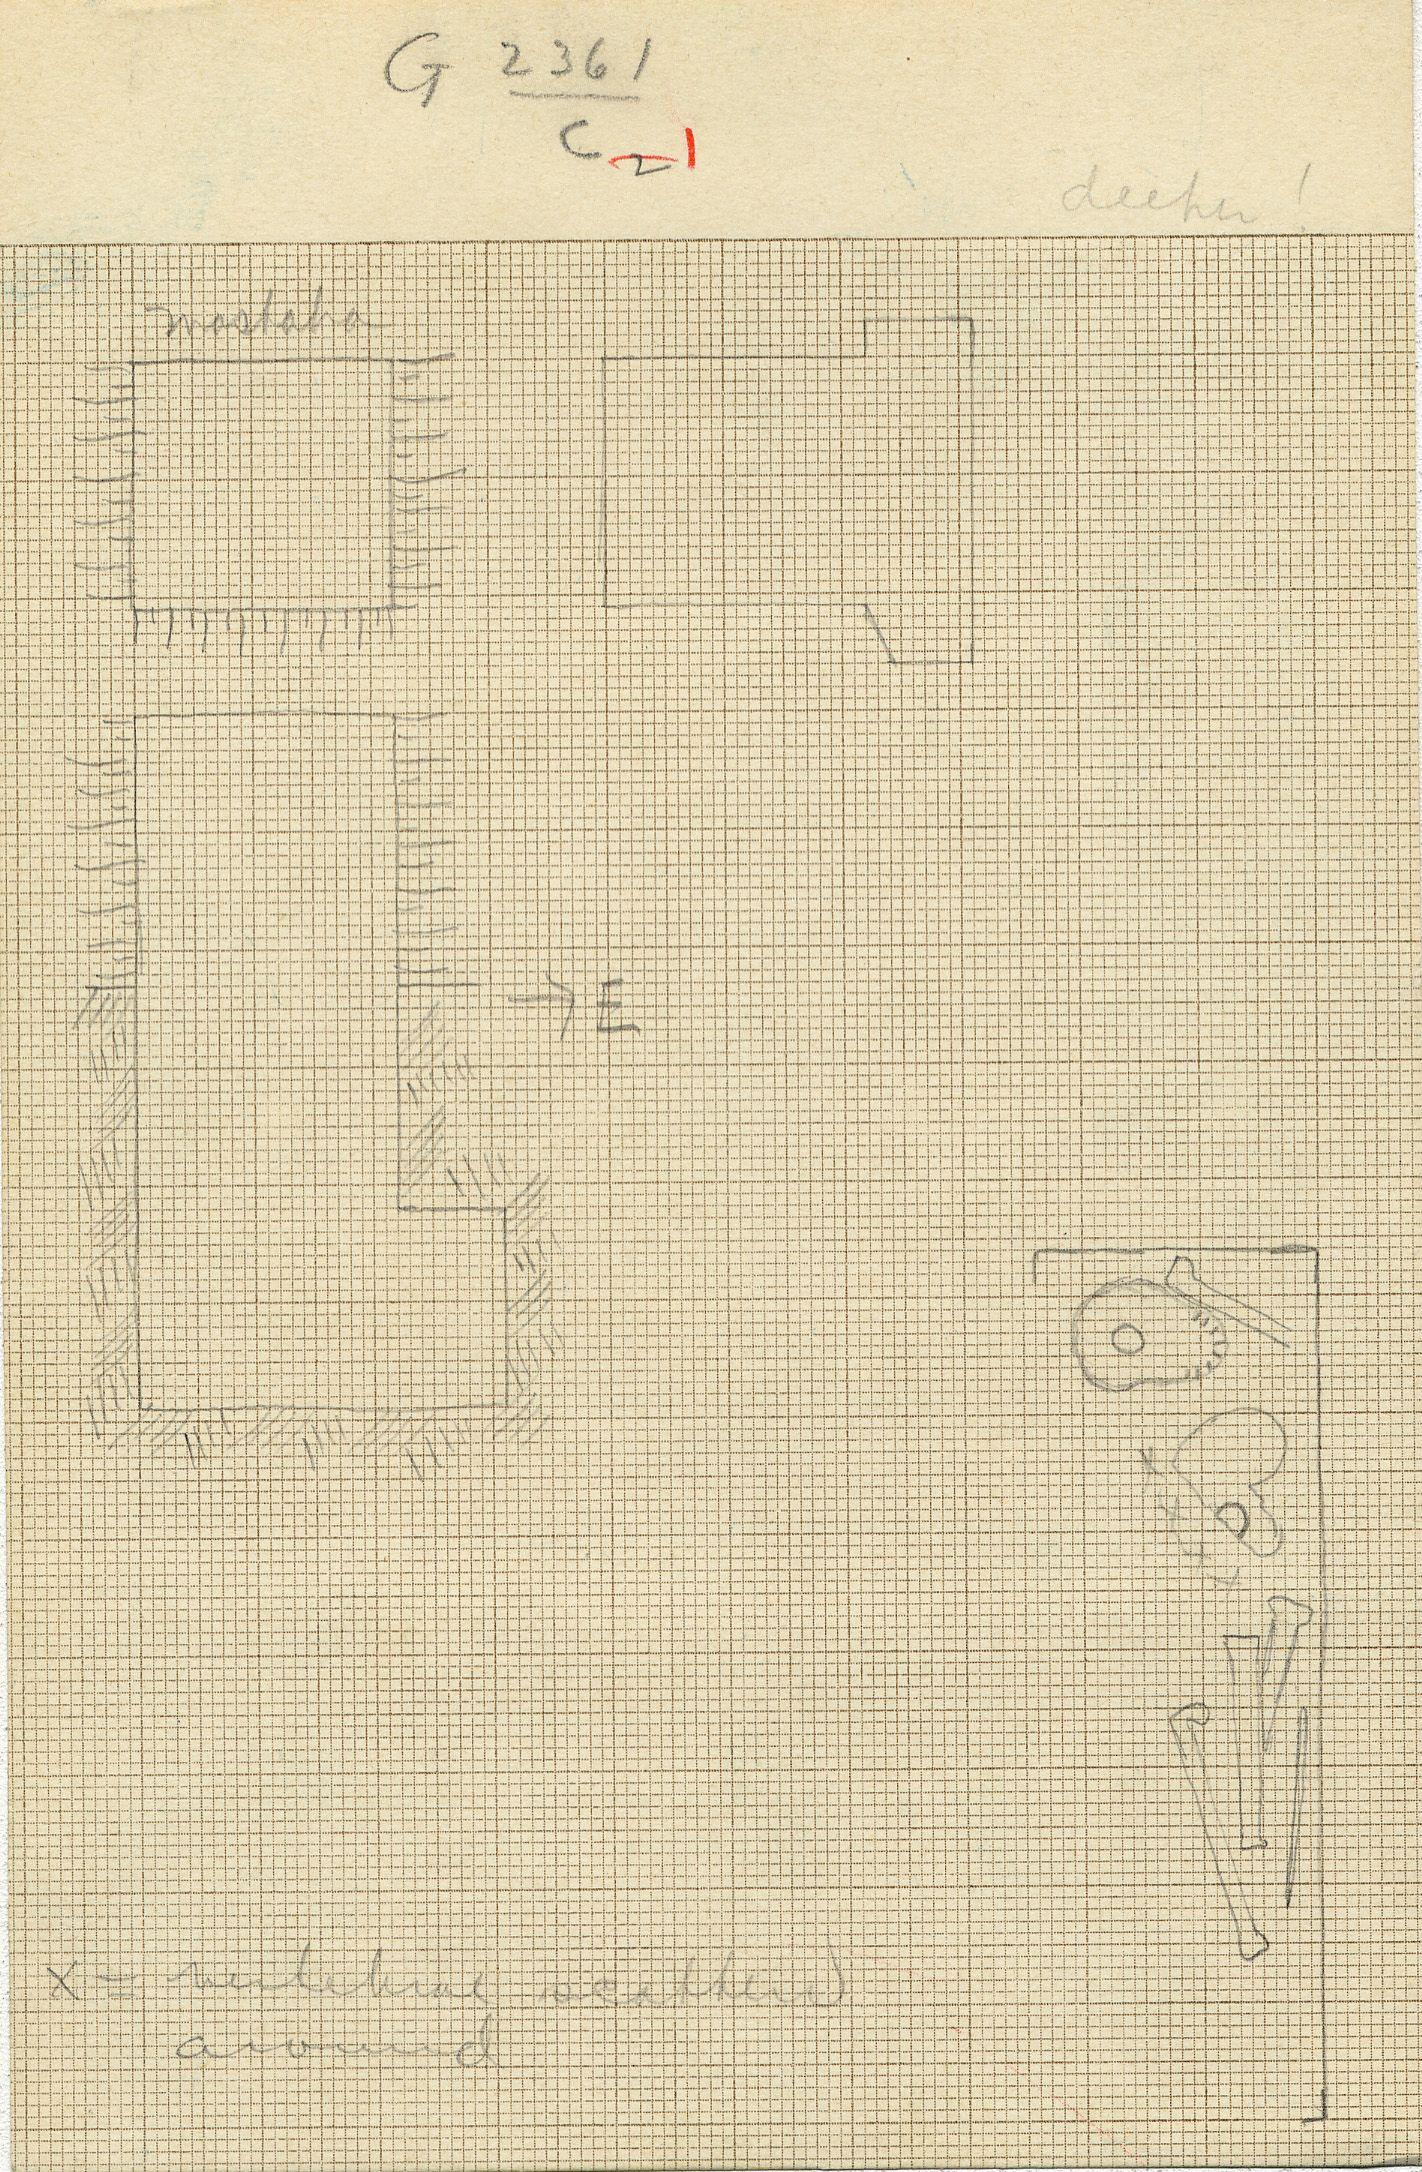 Maps and plans: G 2361, Shaft C (1)